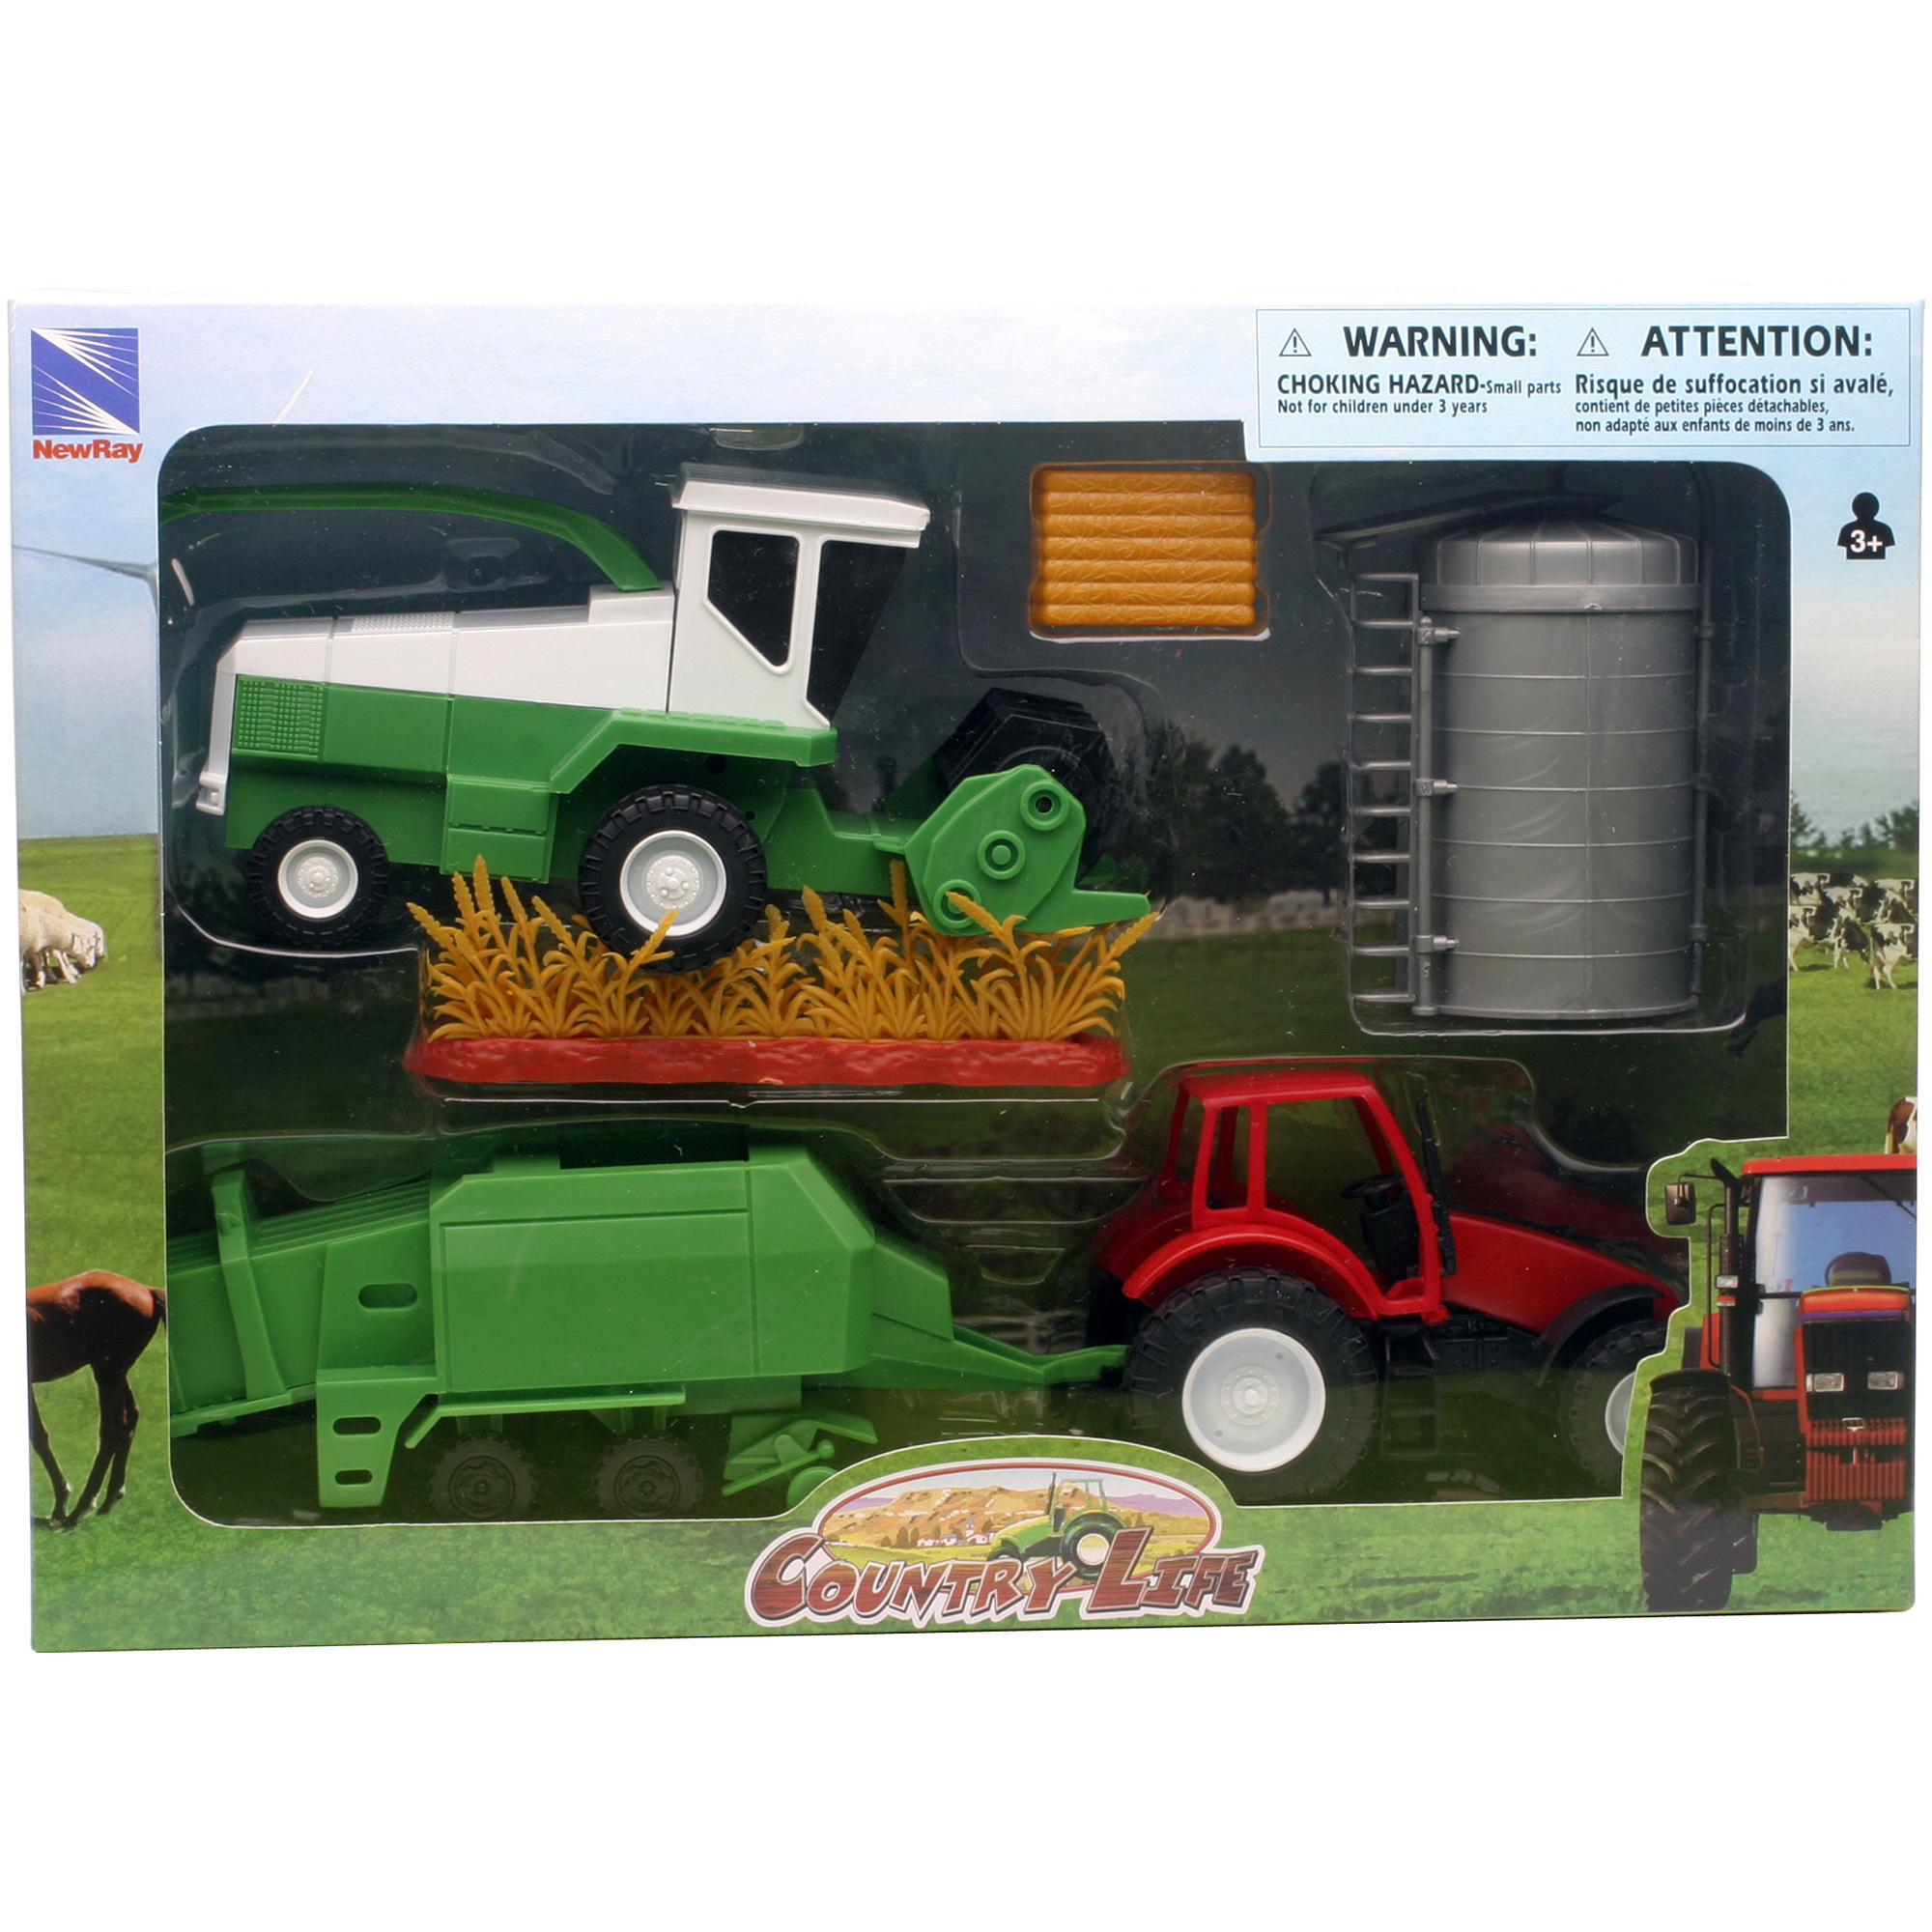 Country Life Farm Tractor and Harvester Set by New-ray Toys